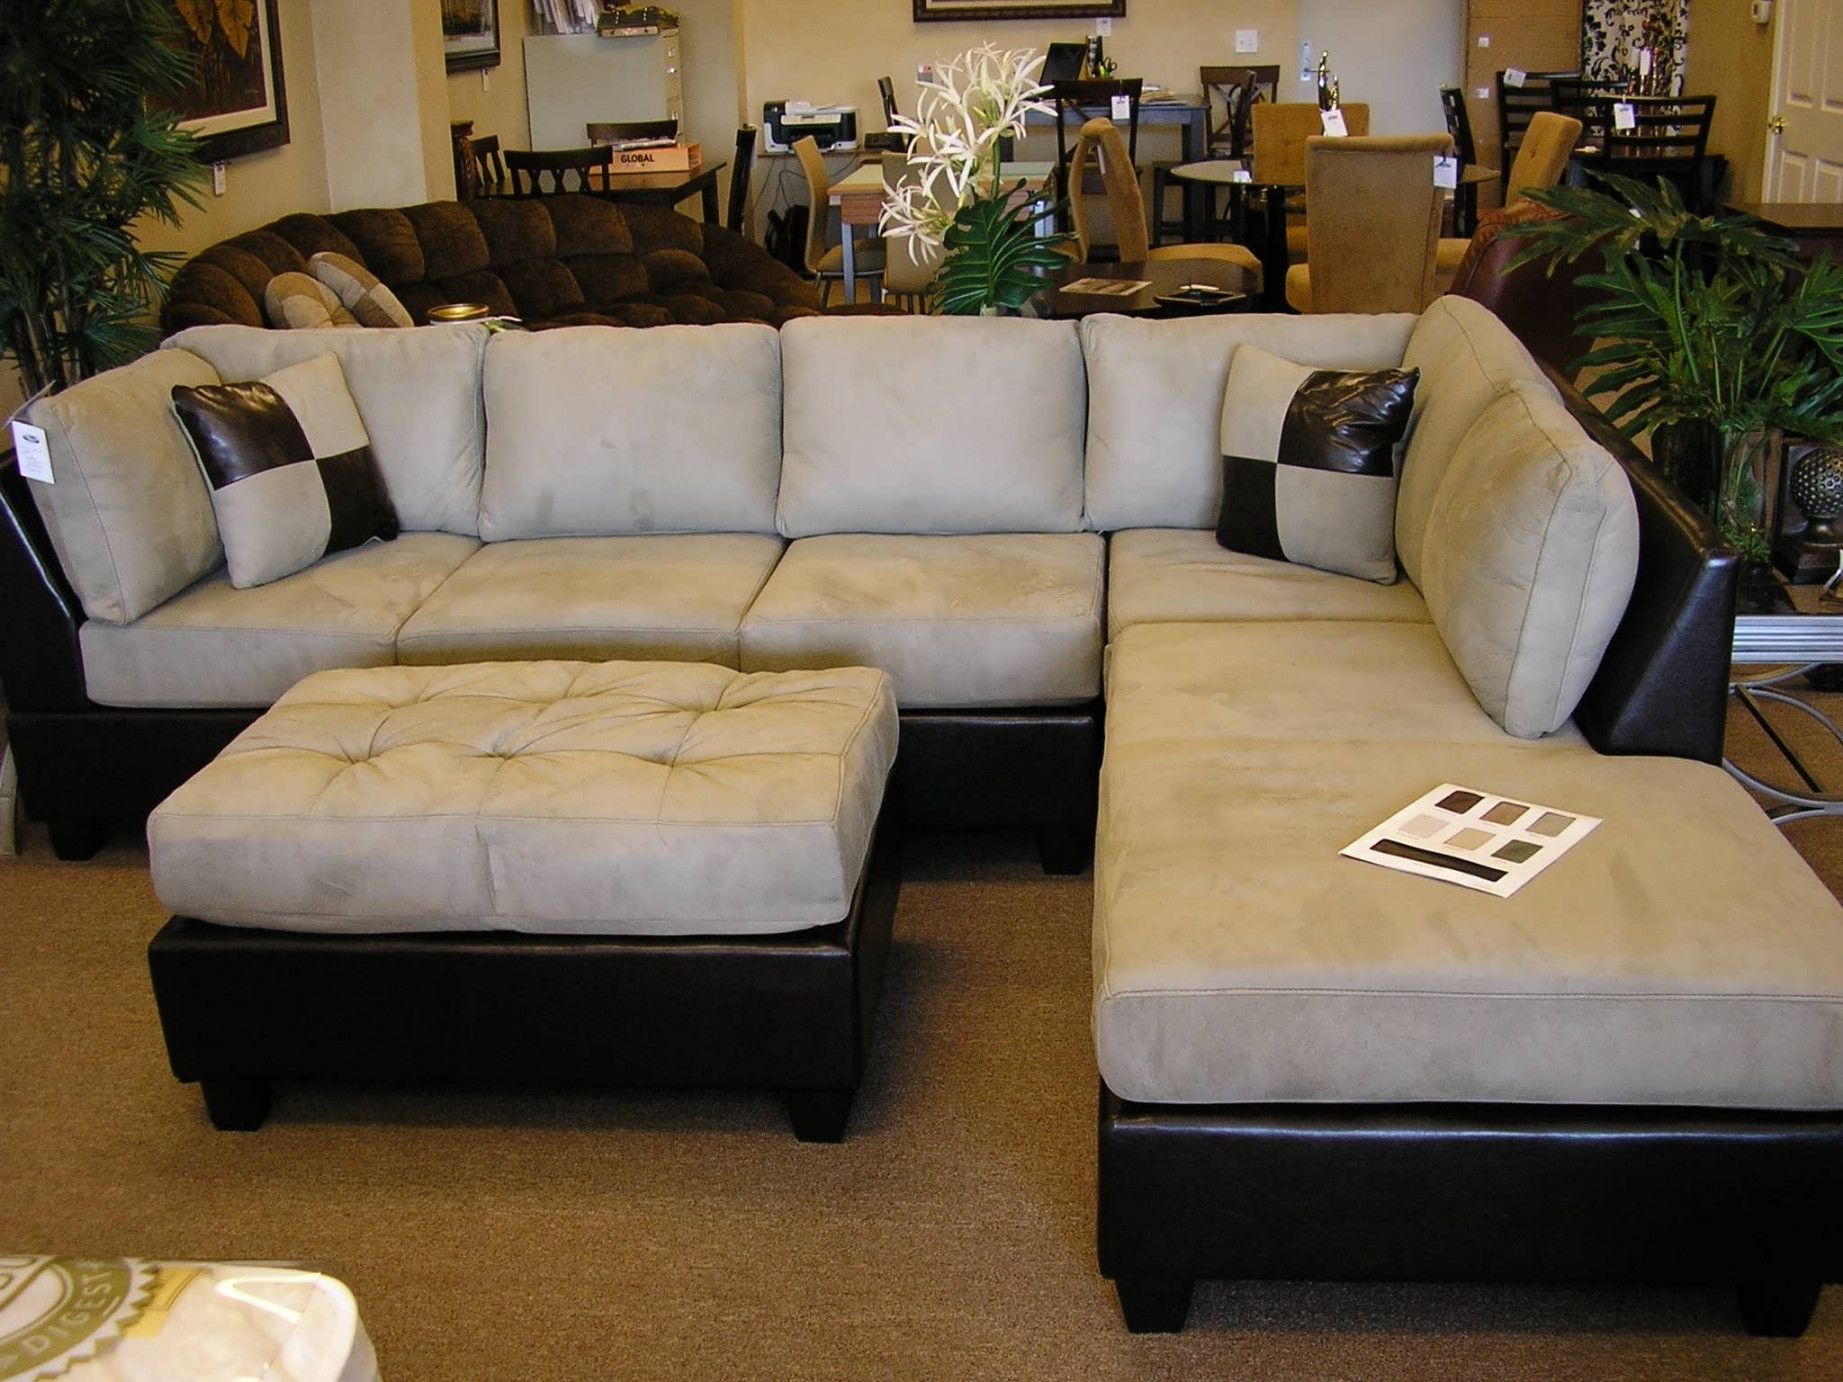 Popular Photo of Sectional Sofas With Chaise Lounge And Ottoman